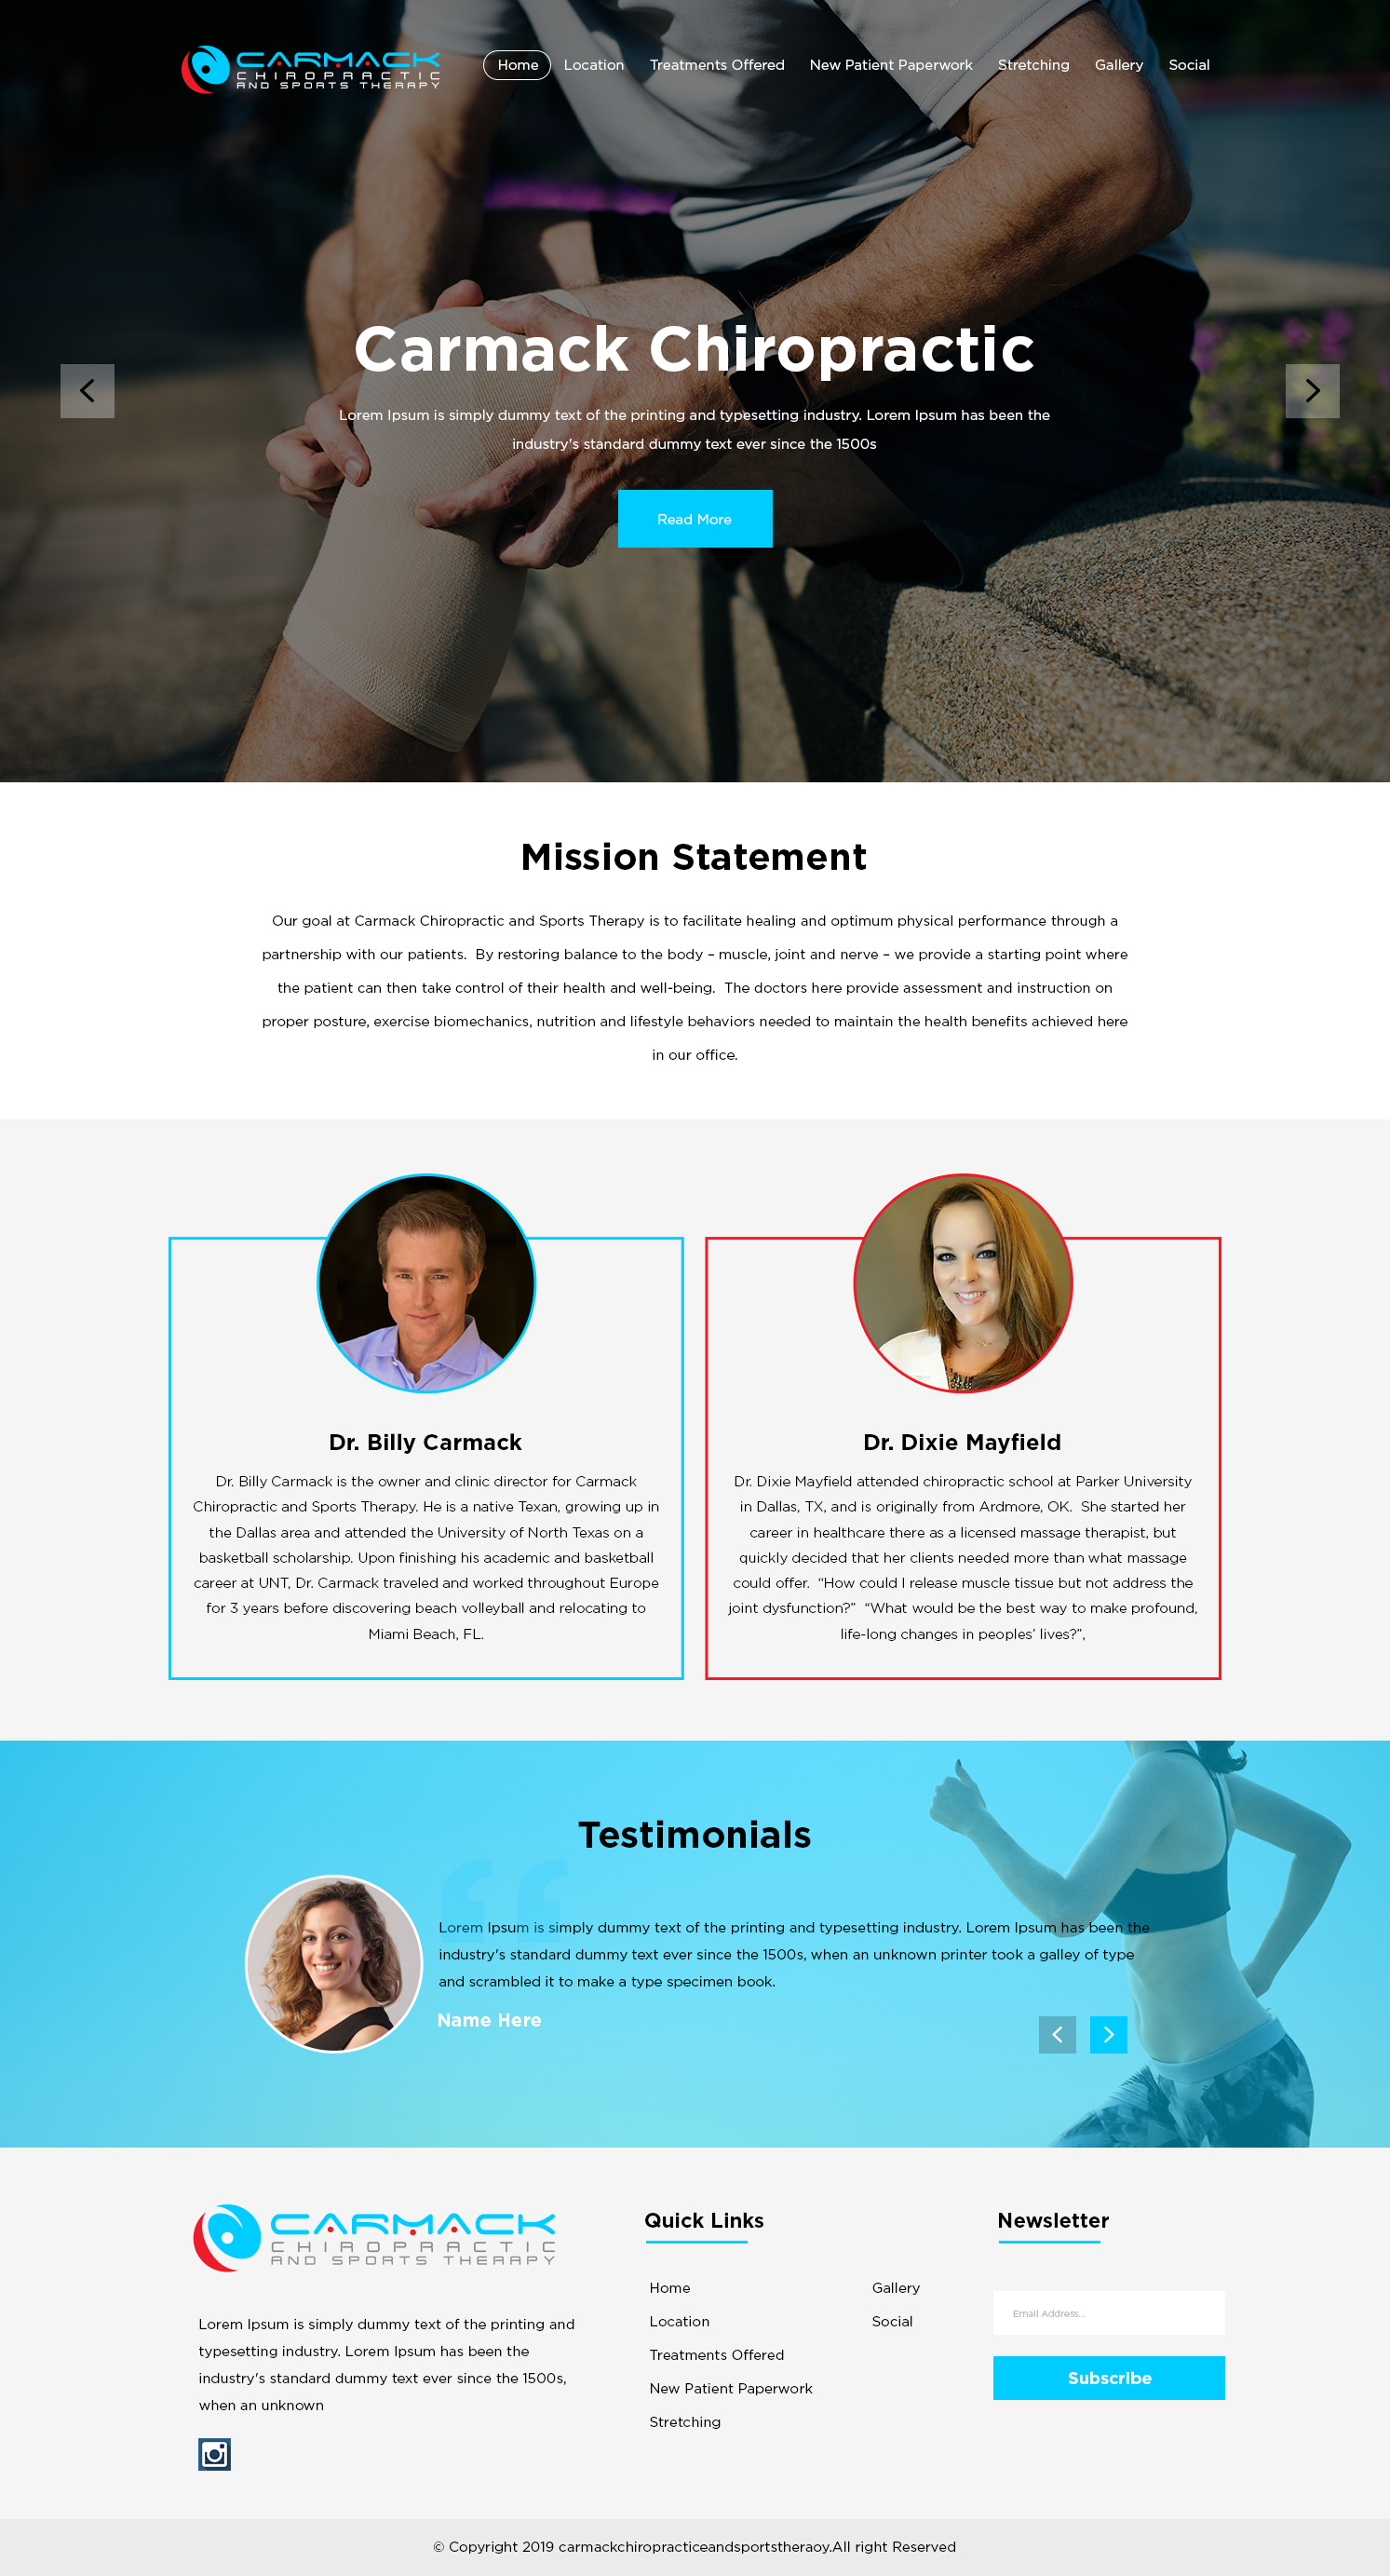 Modern Upmarket Health Care Web Design For Carmack Chiropractic And Sports Therapy By Designanddevelopment Design 21906068